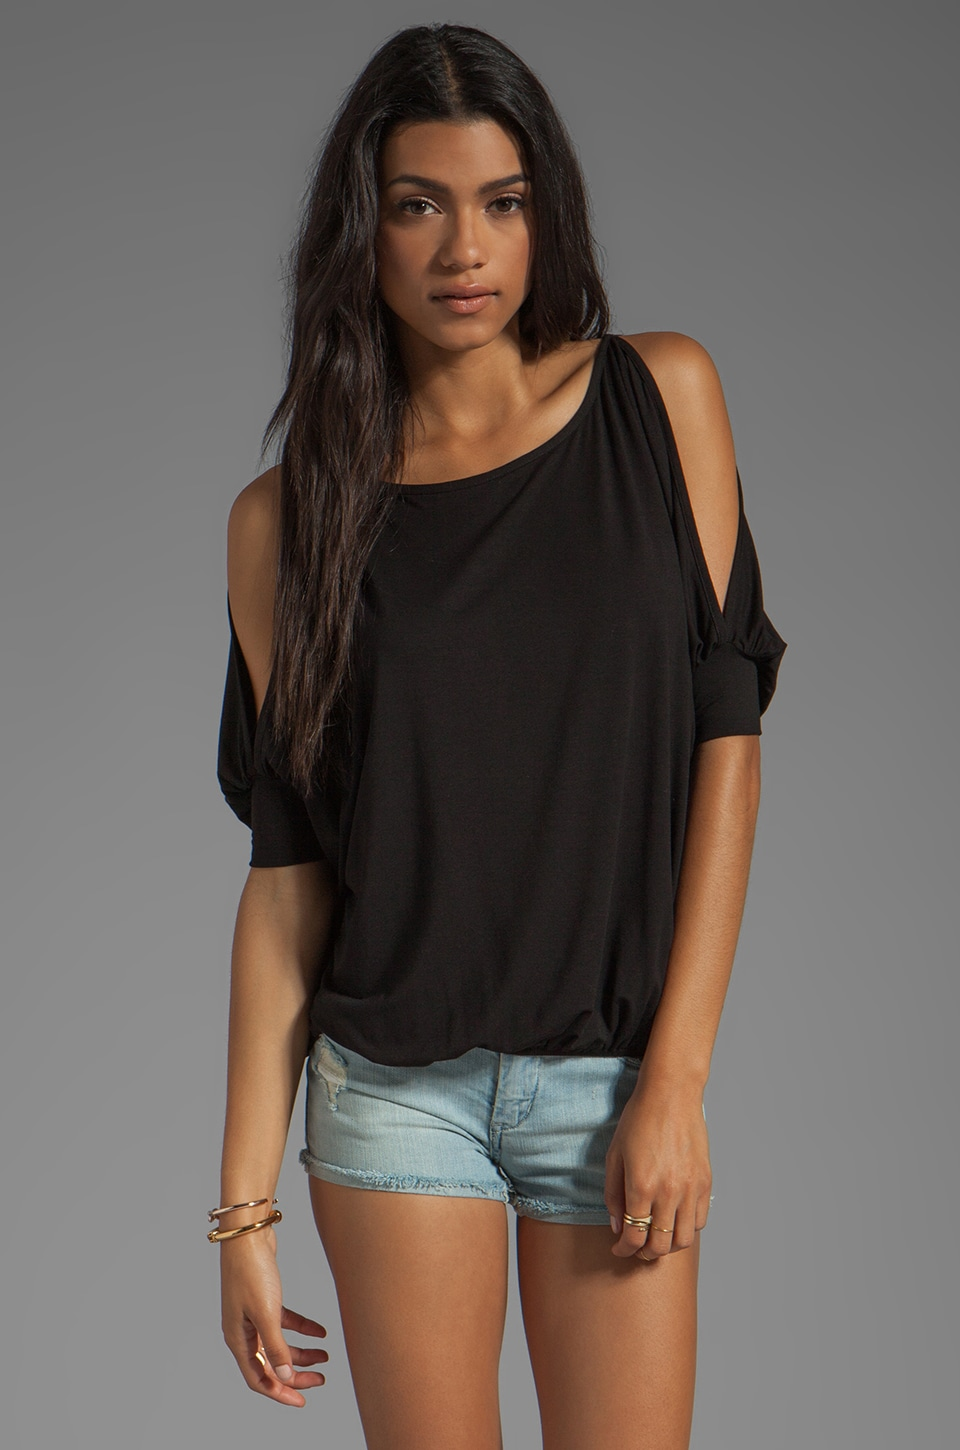 James & Joy Dawn Open Shoulder Top in Black